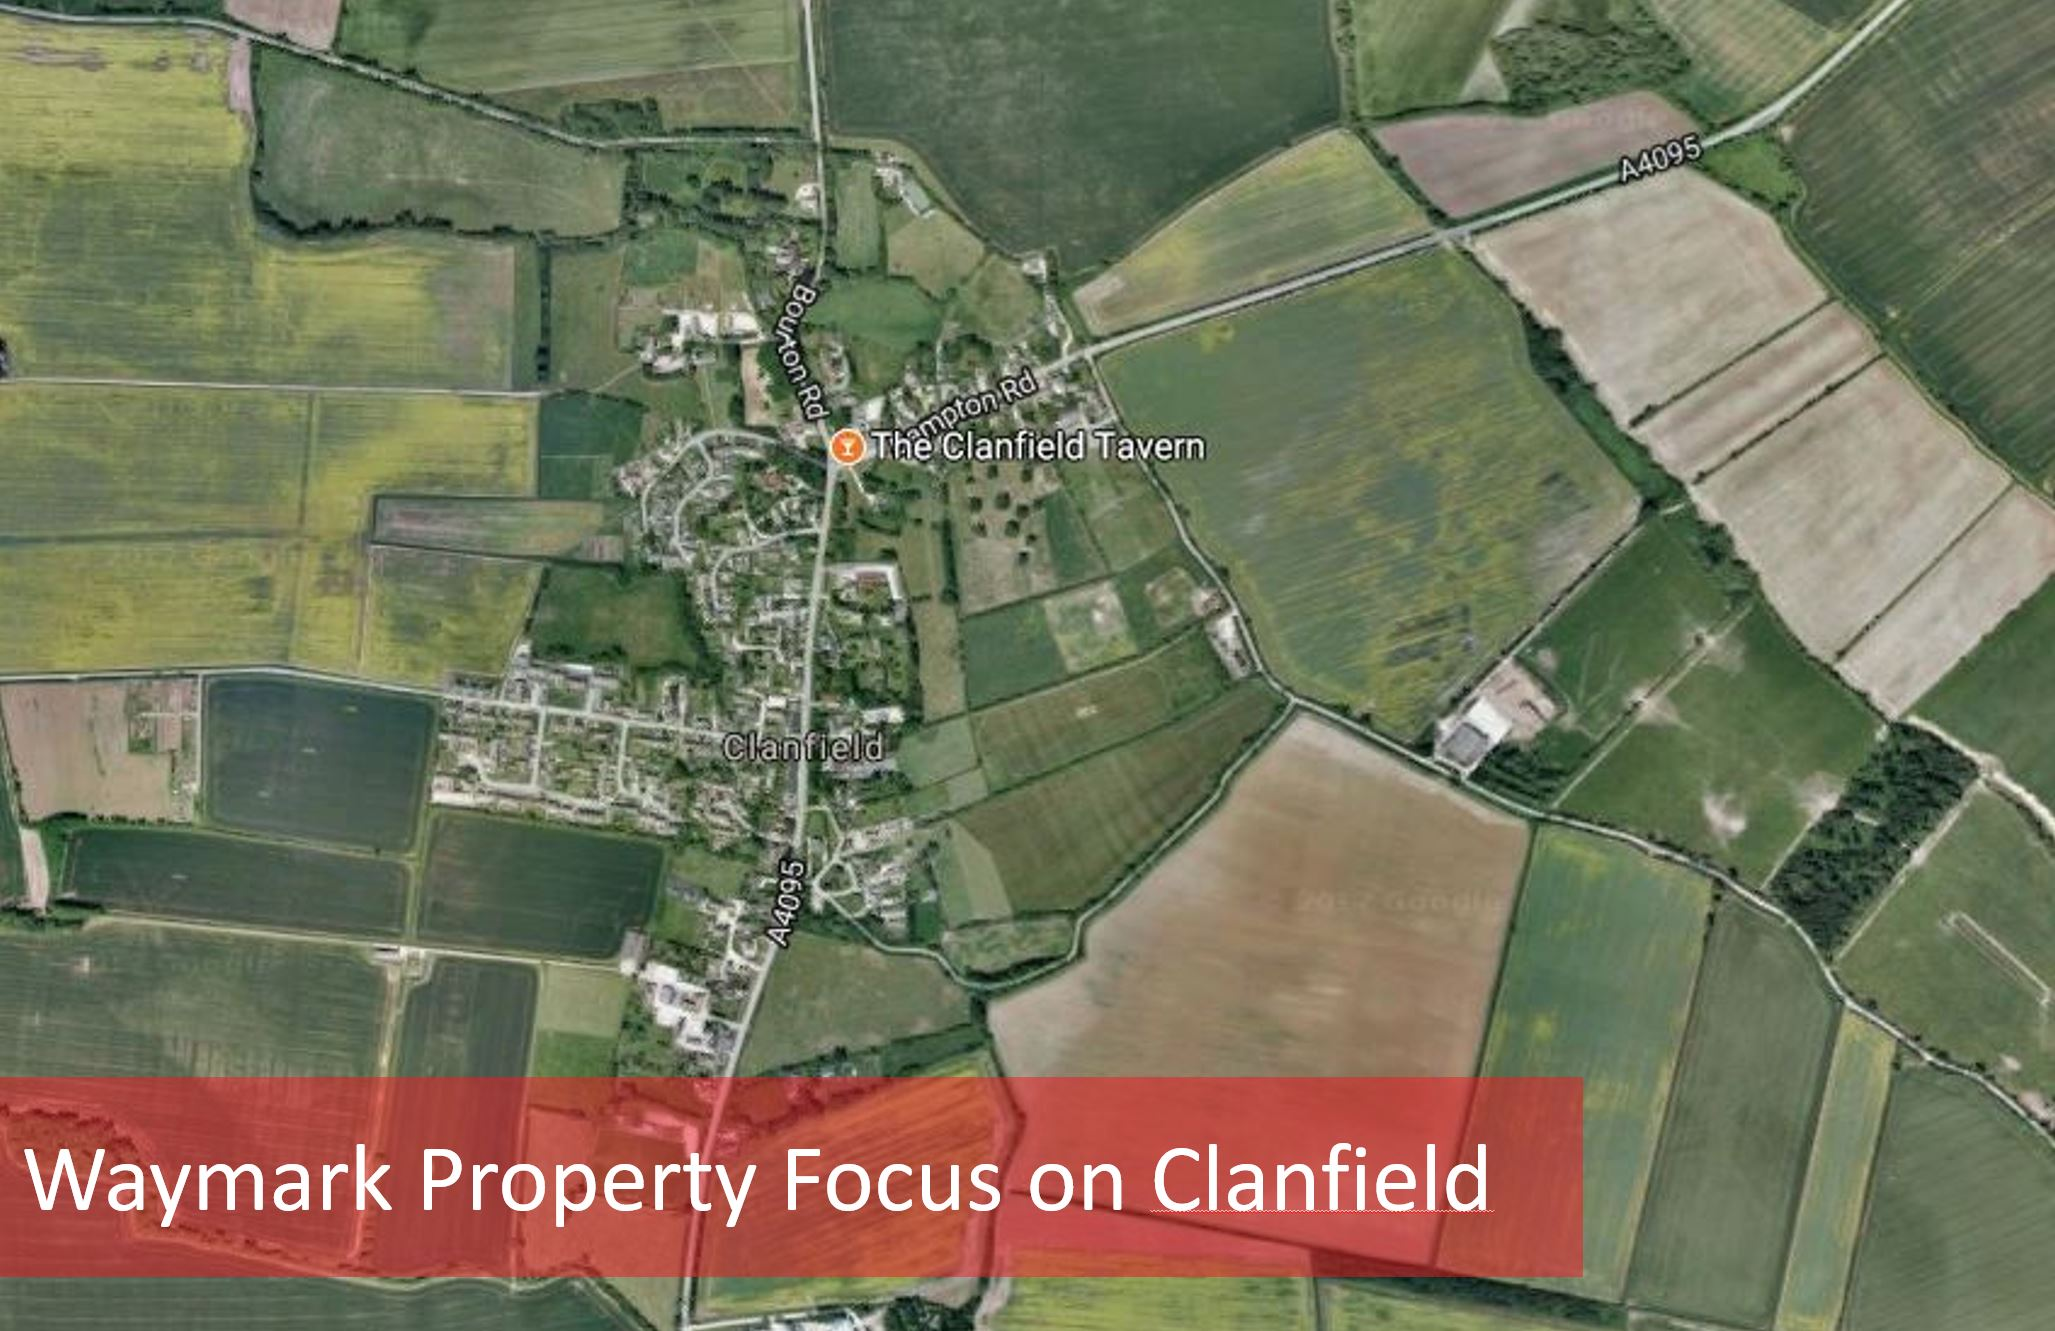 Waymark Property Village Focus on Clanfield